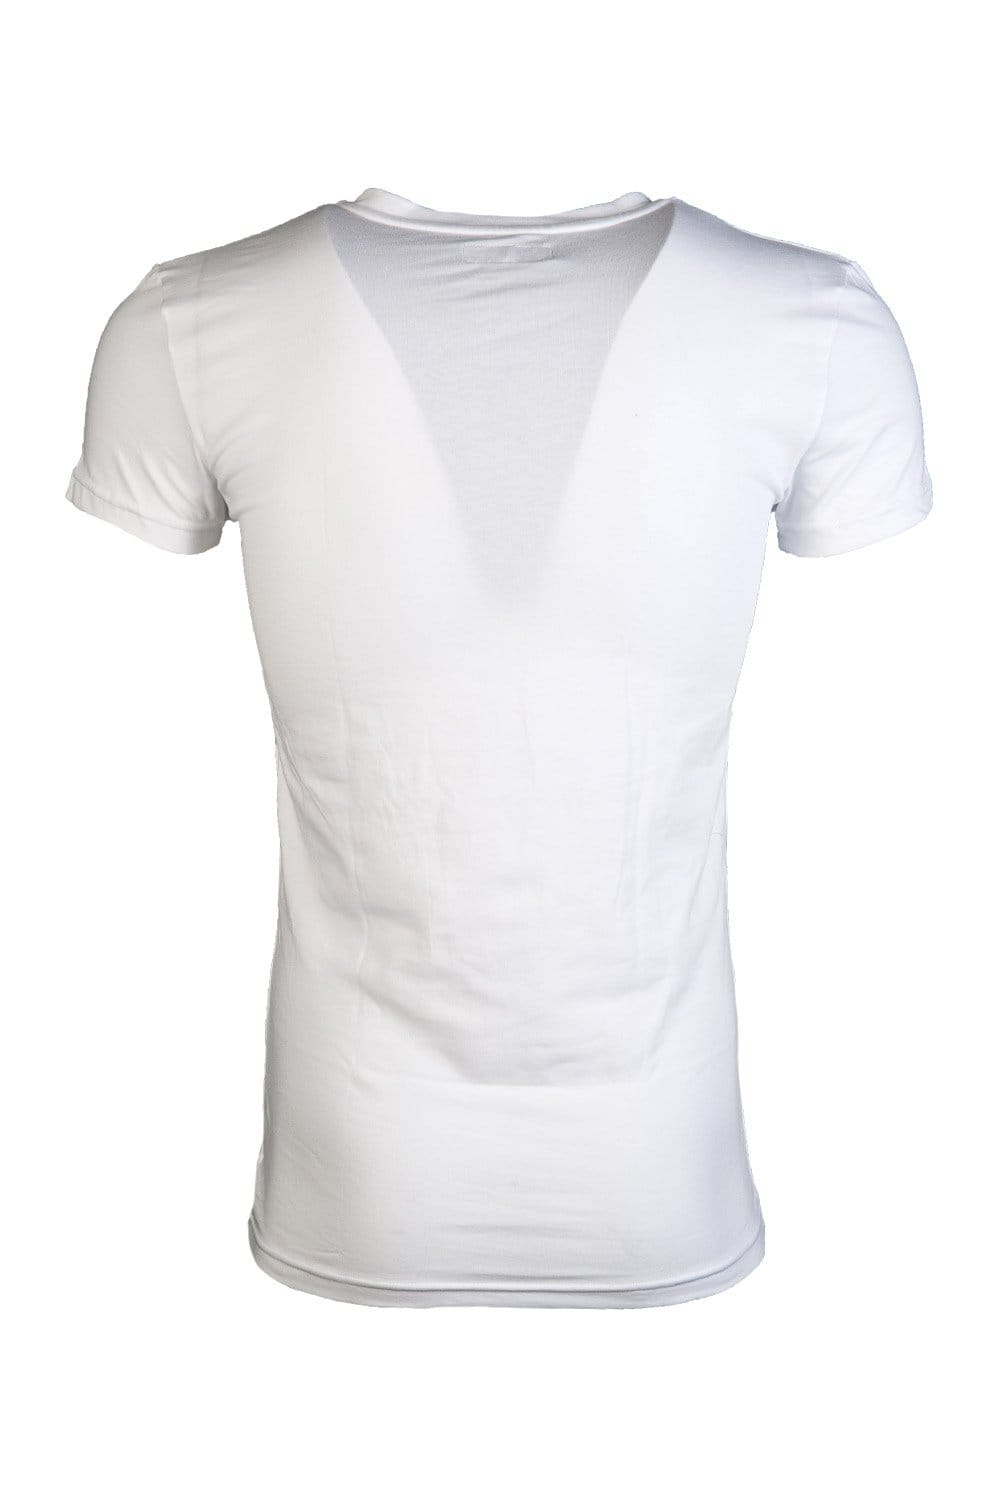 new lower prices cheap best loved Emporio Armani V-neck Underwear T-shirt in Black and White 110752CC518